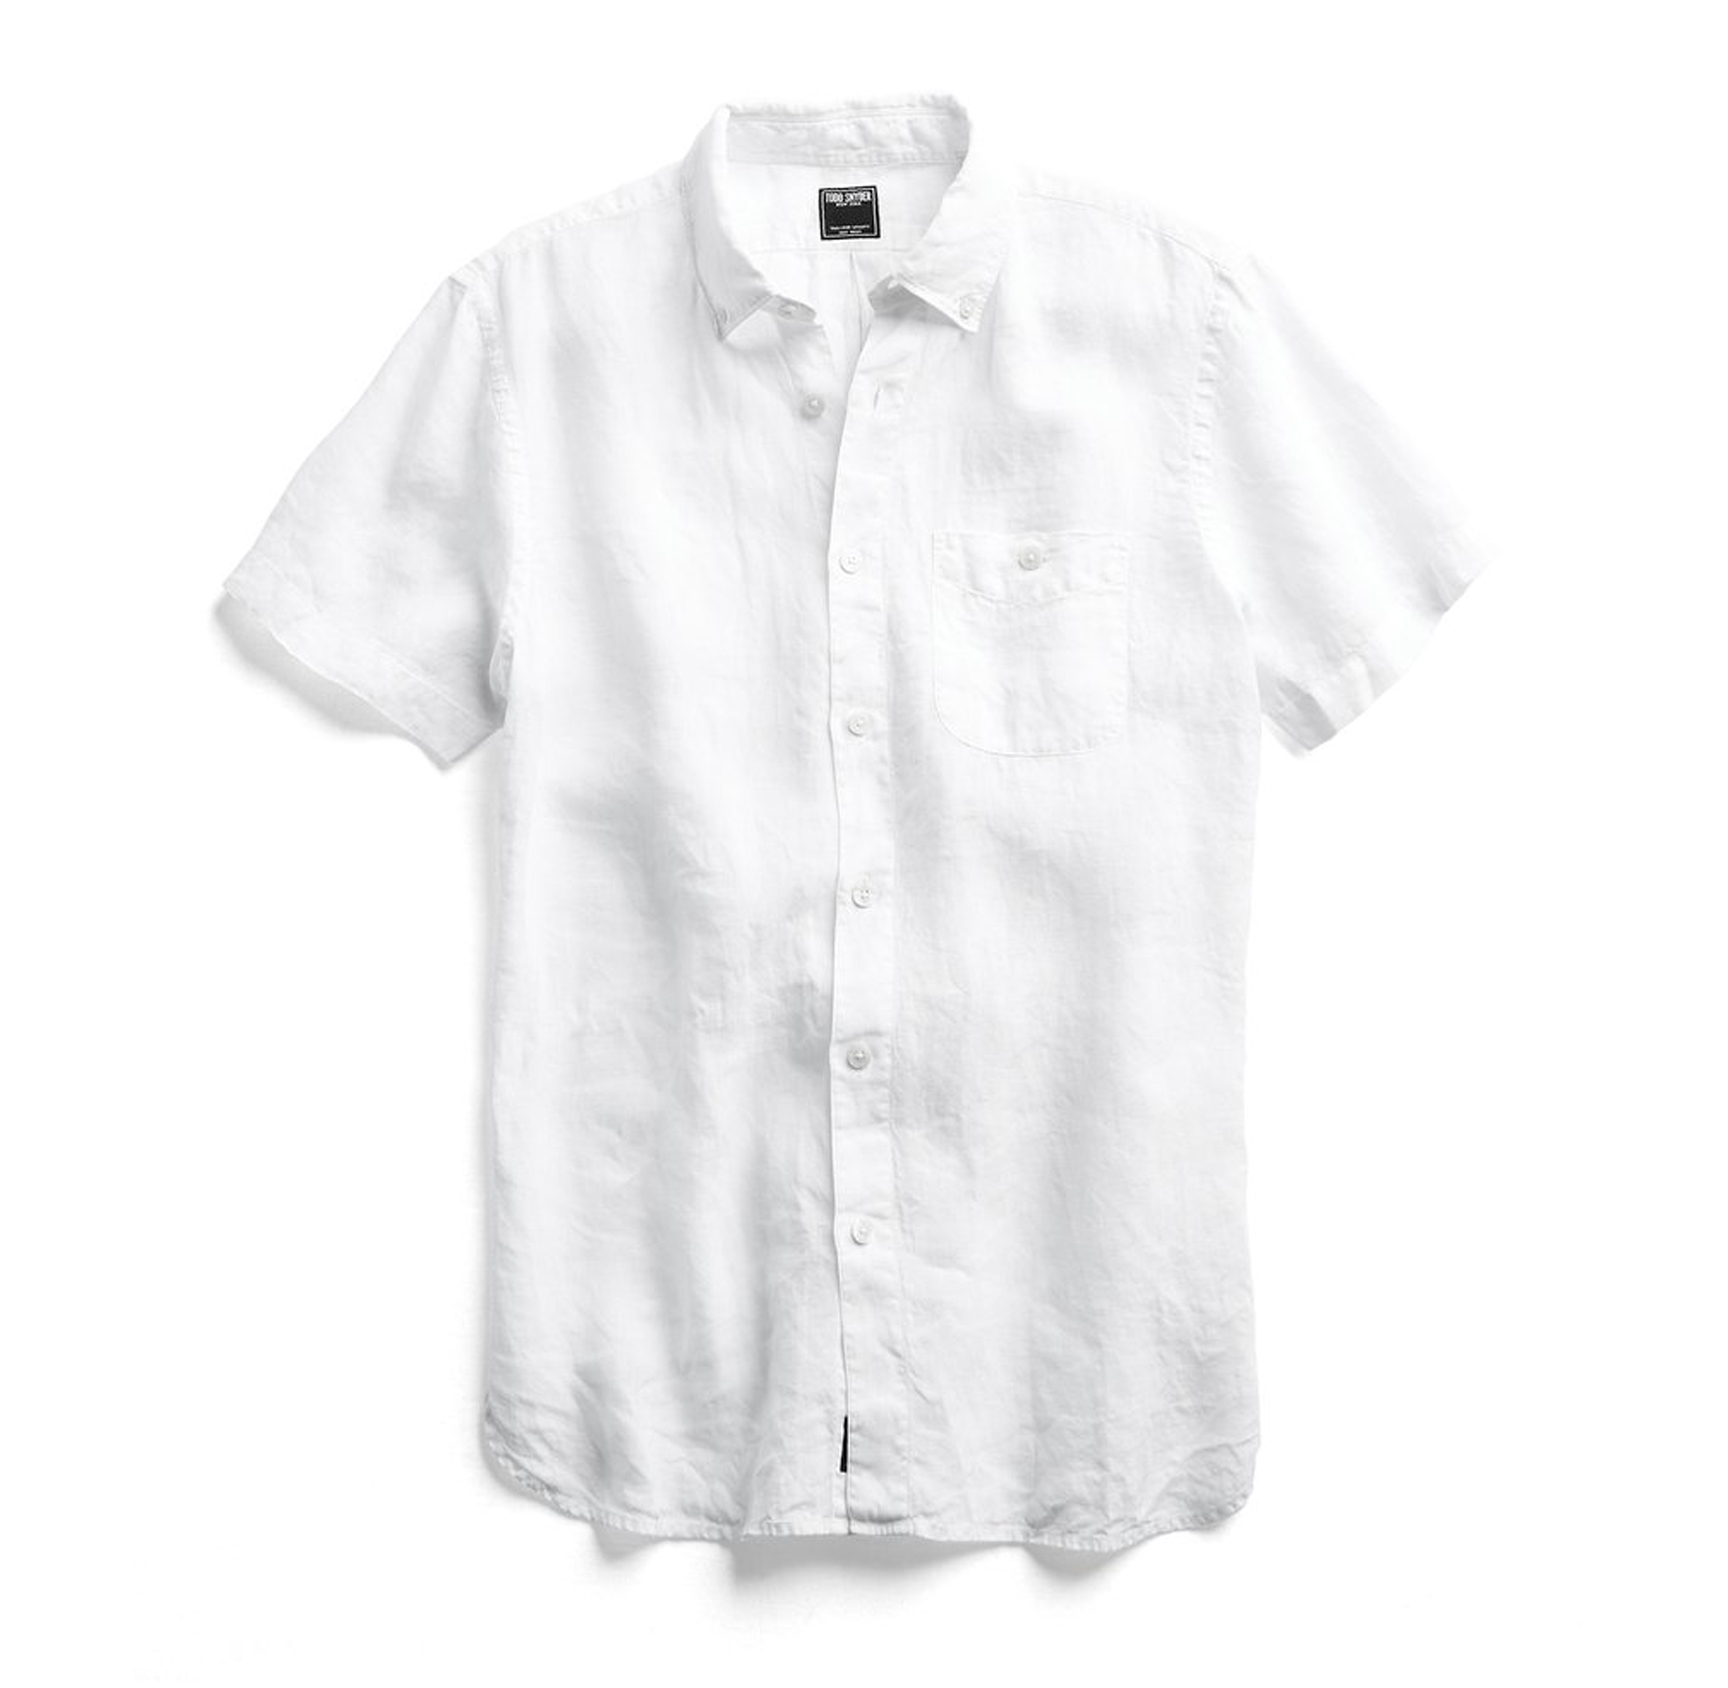 Tom Snyder white shirt